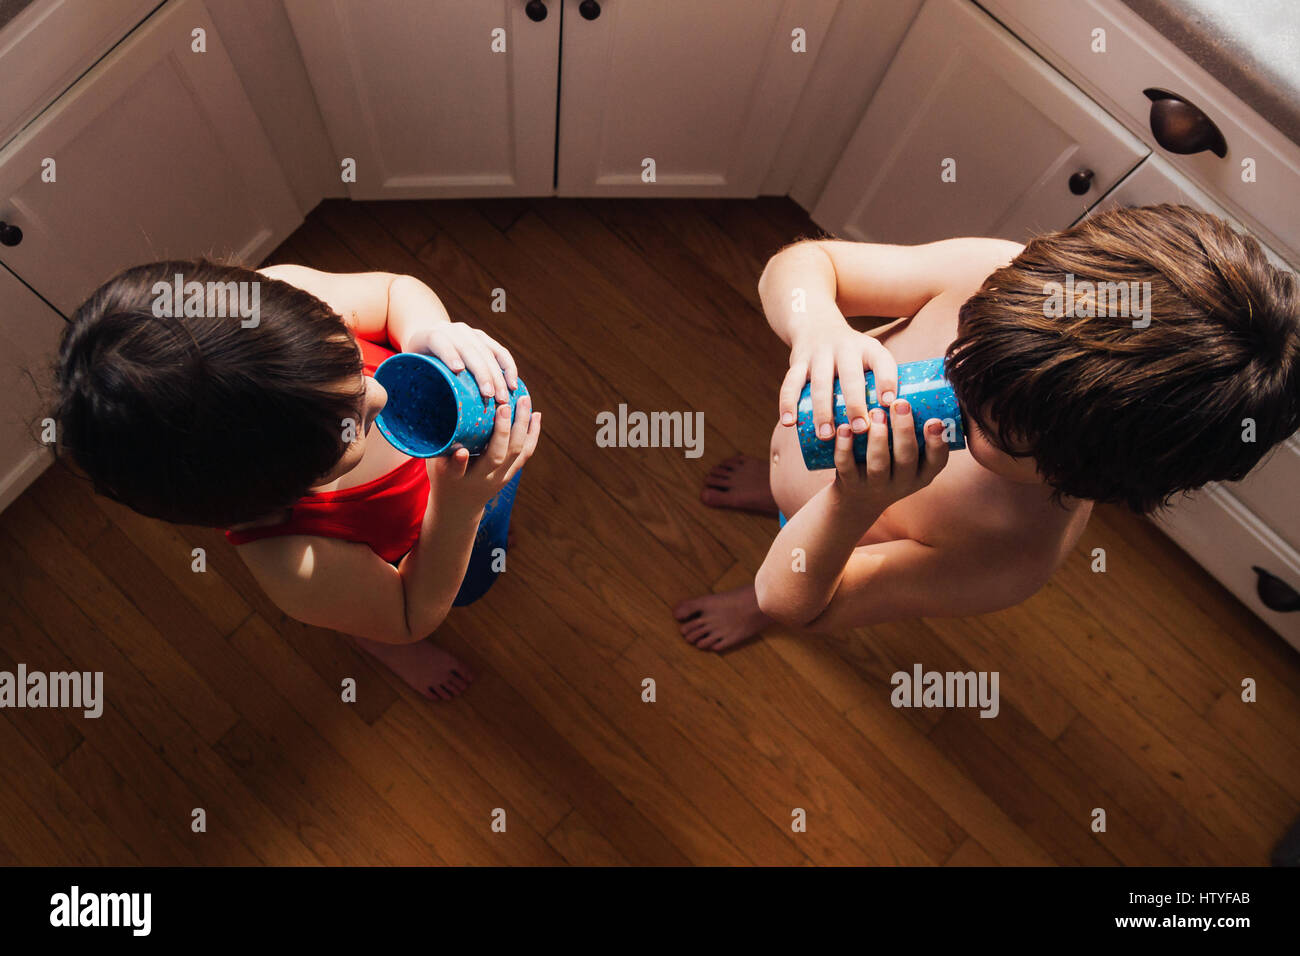 Boy and girl standing in kitchen drinking water - Stock Image